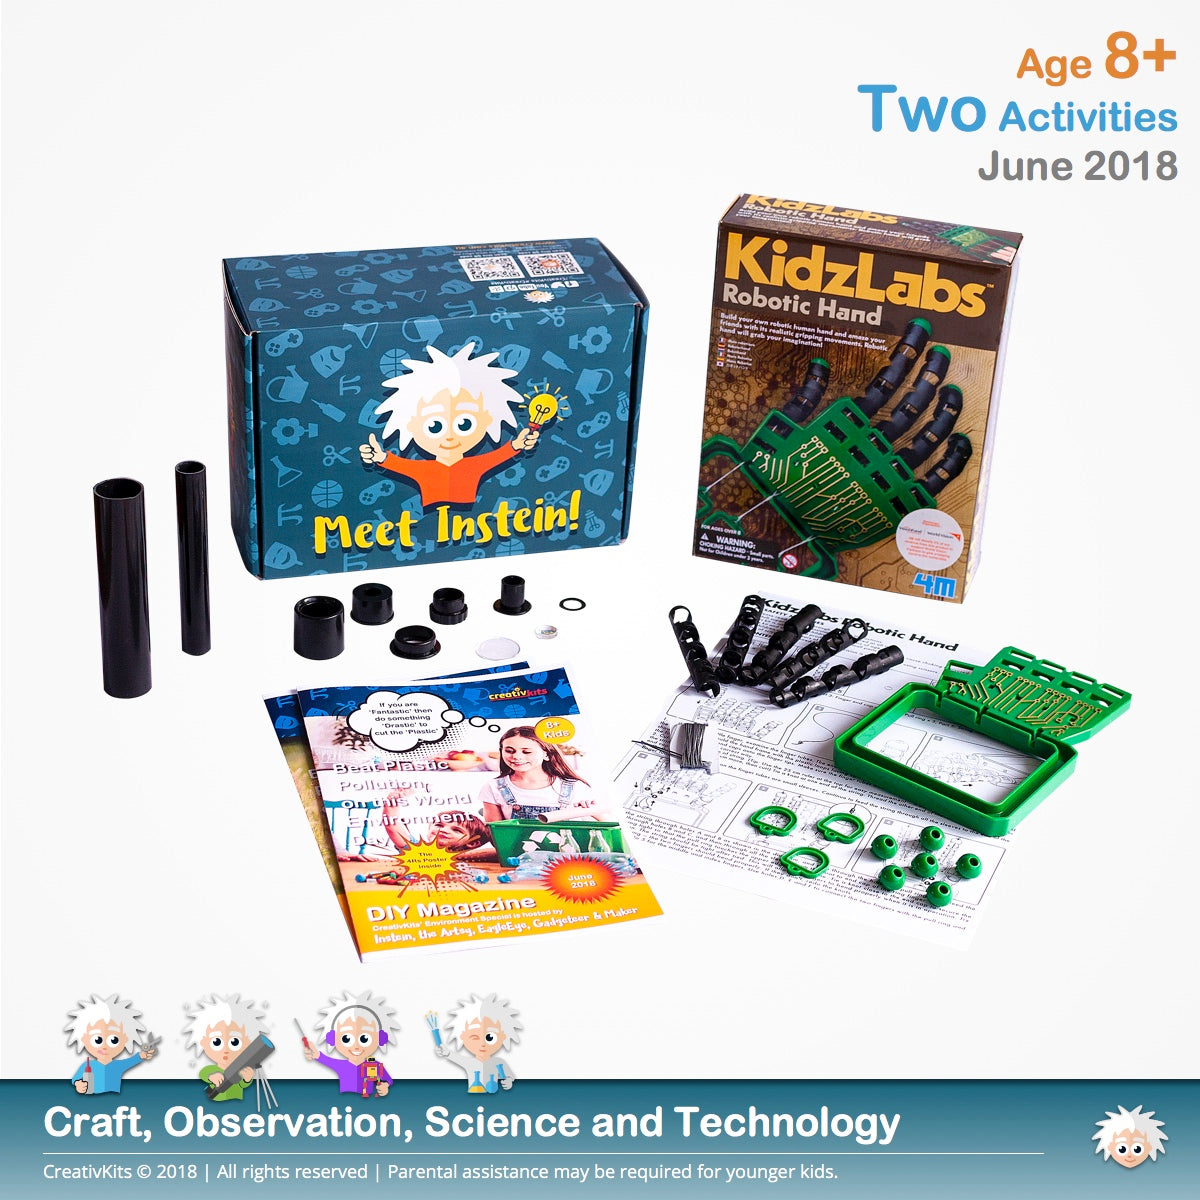 Build Robotic Hand and Assemble a Telescope | June Standard Science and Tech.y Kit | Age 8+